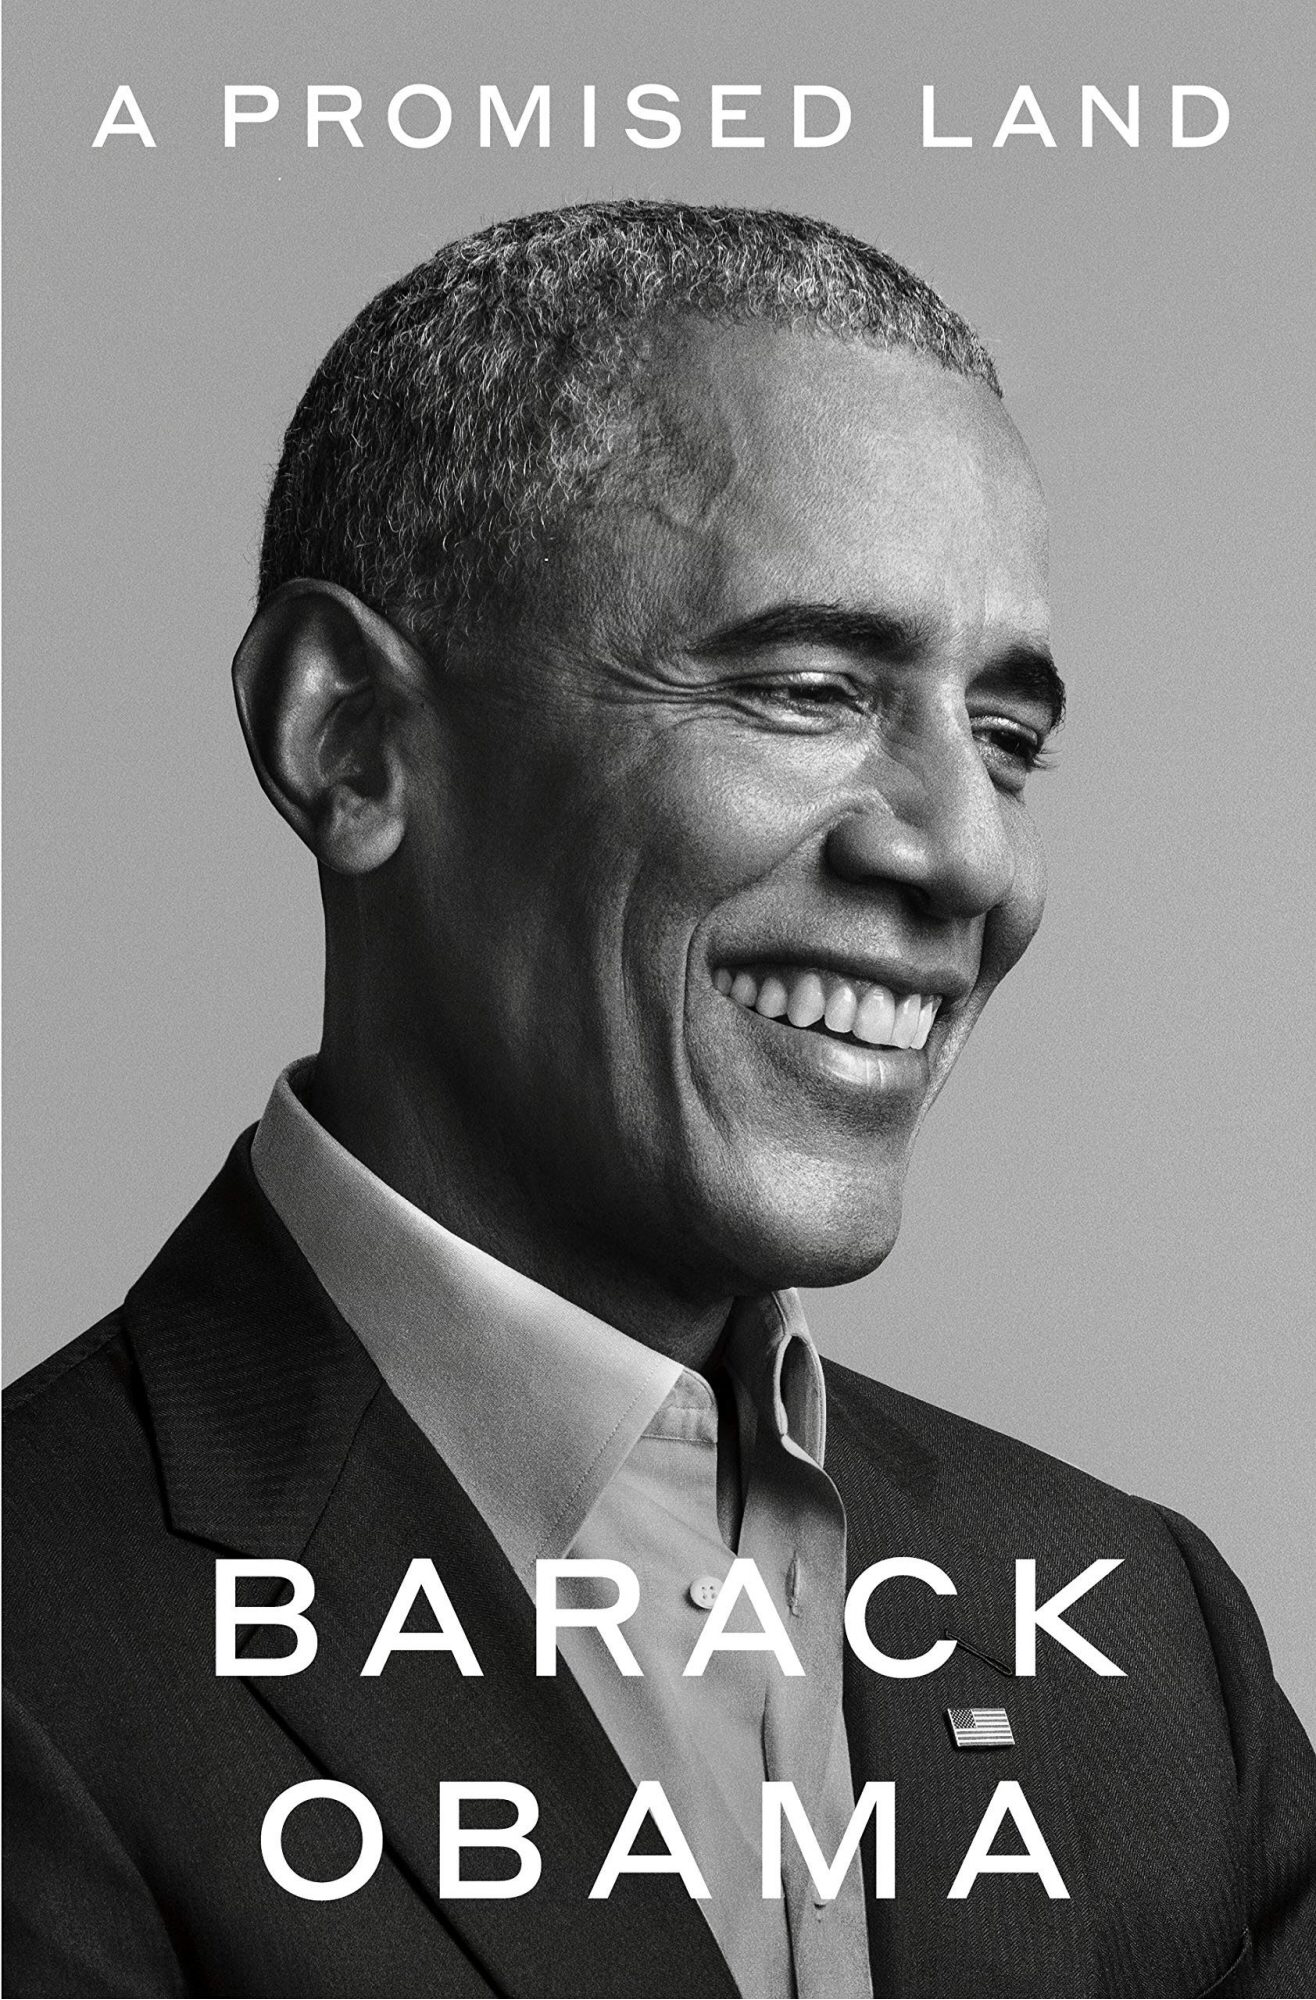 Barrack-Obama-InStyle-magazine-January-issue-A-promised-land-book